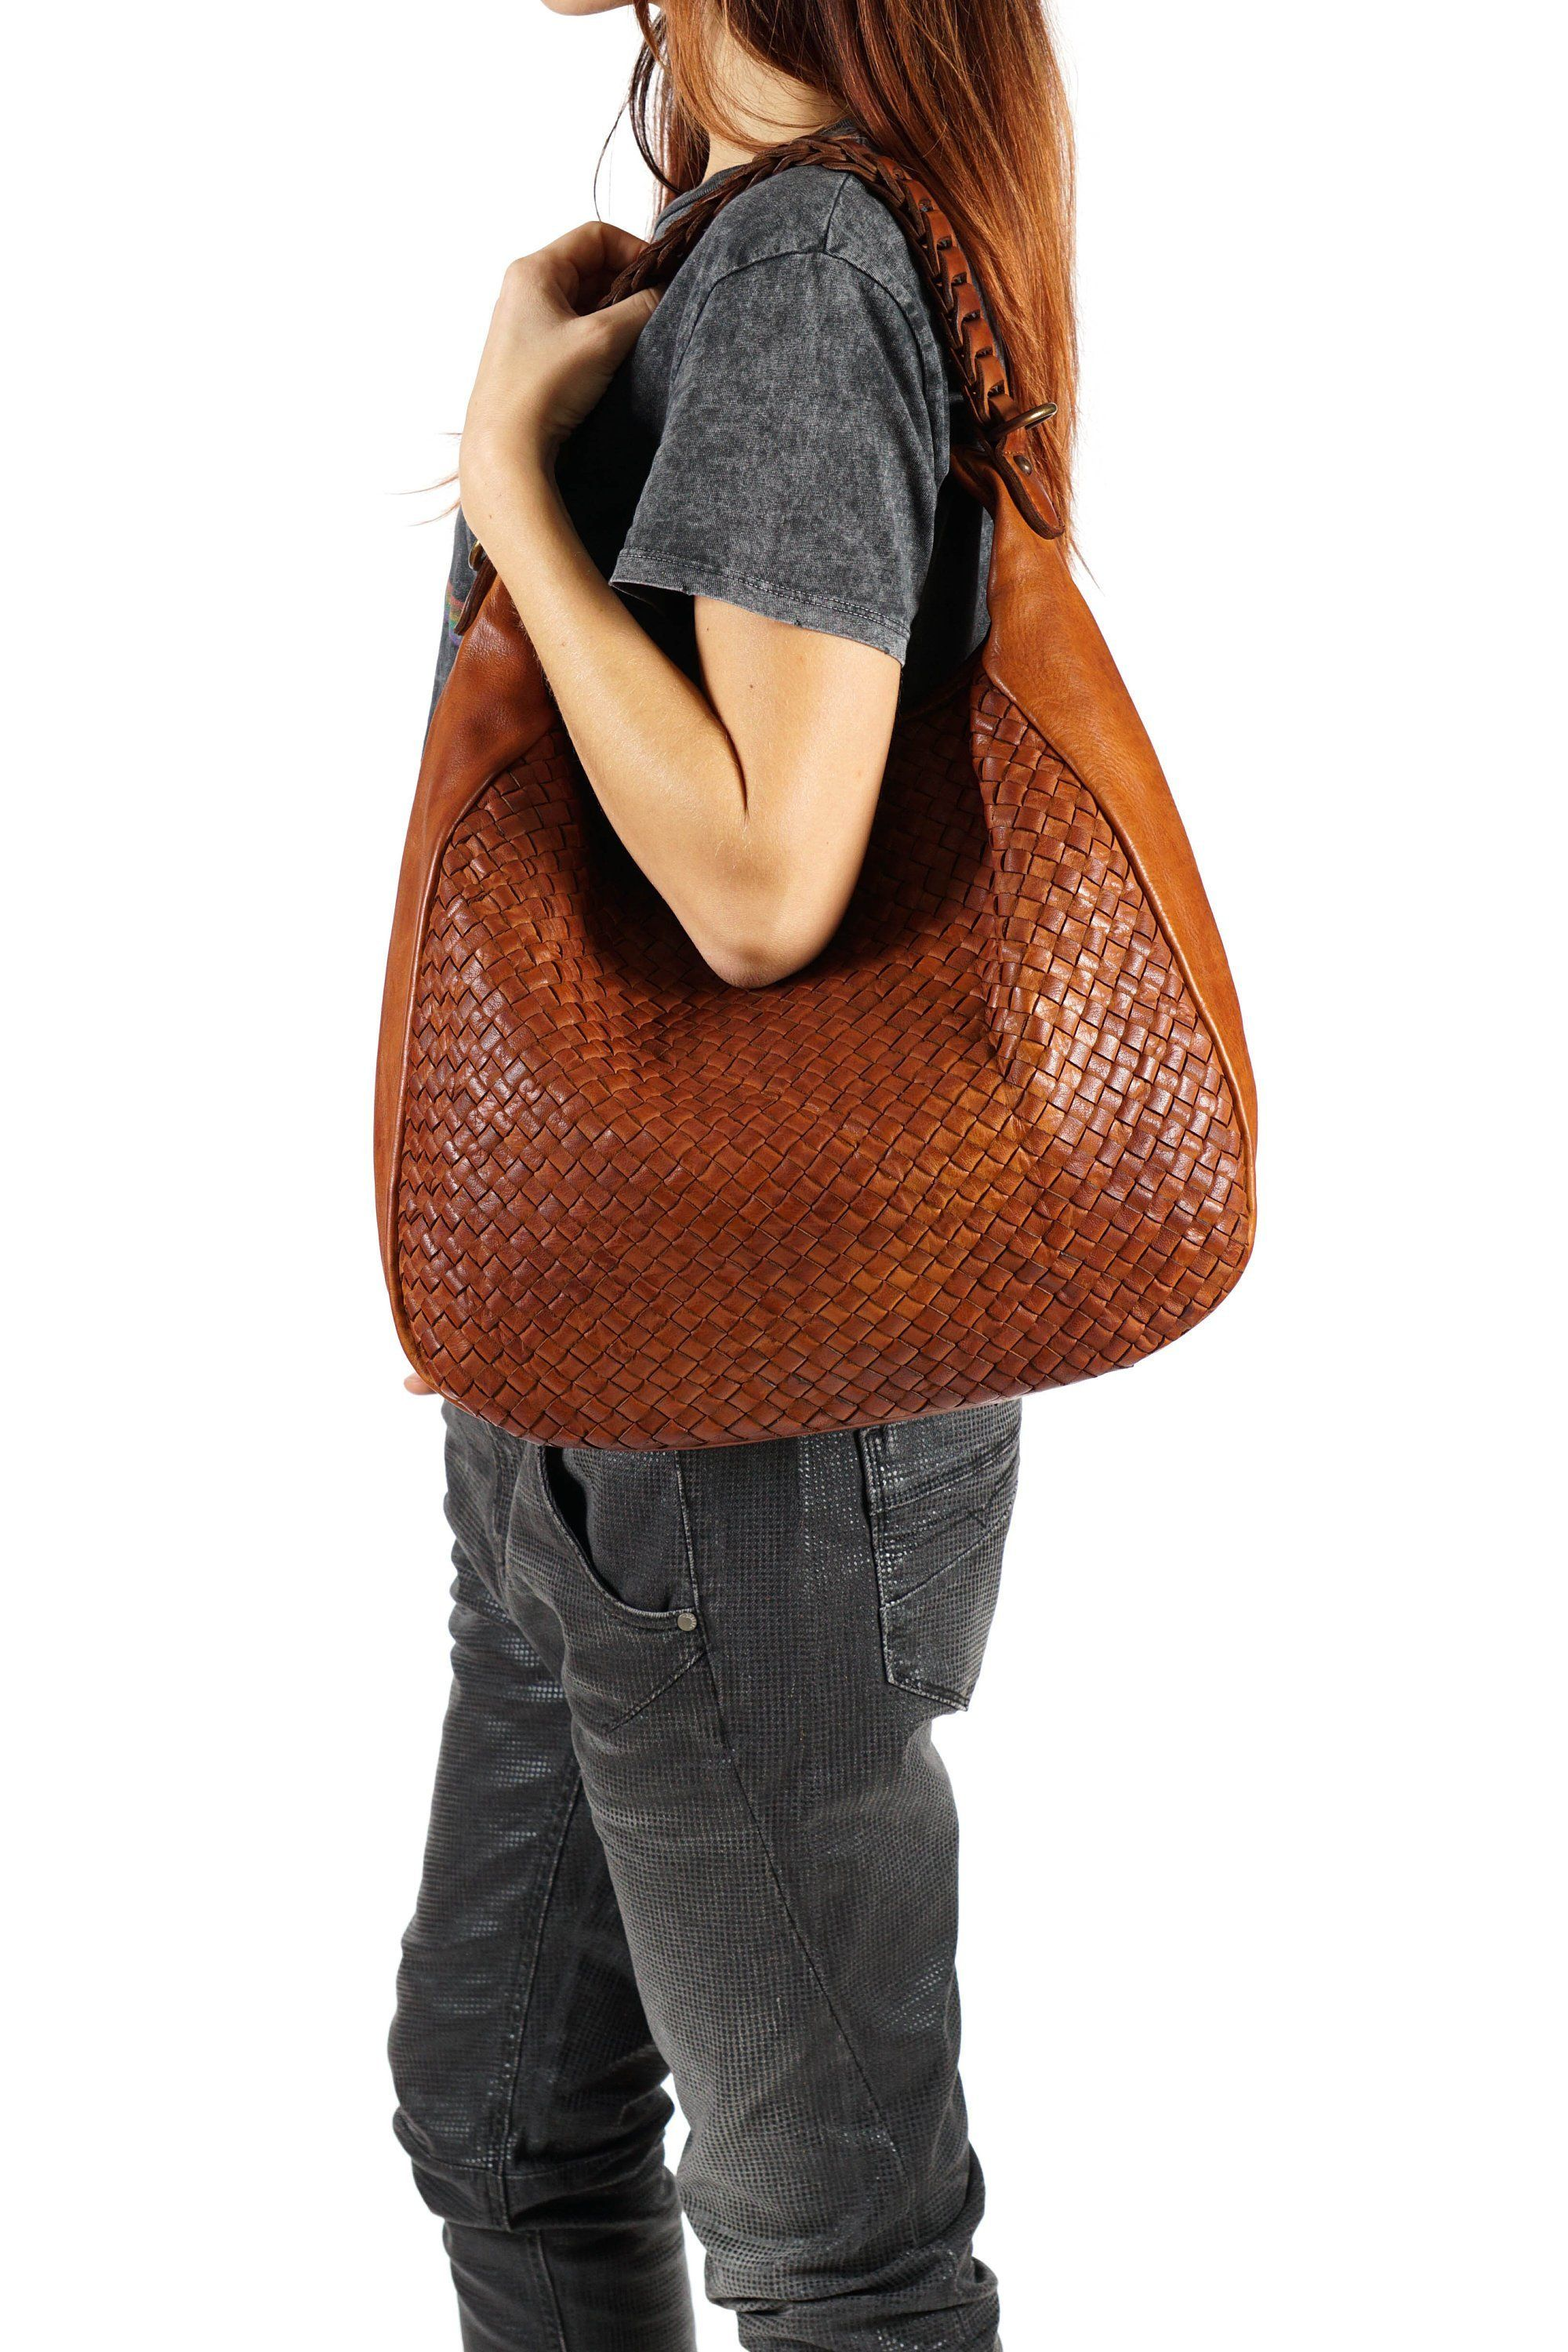 e527cb2d2b7 Excited to share the latest addition to my  etsy shop  Hobo Bag